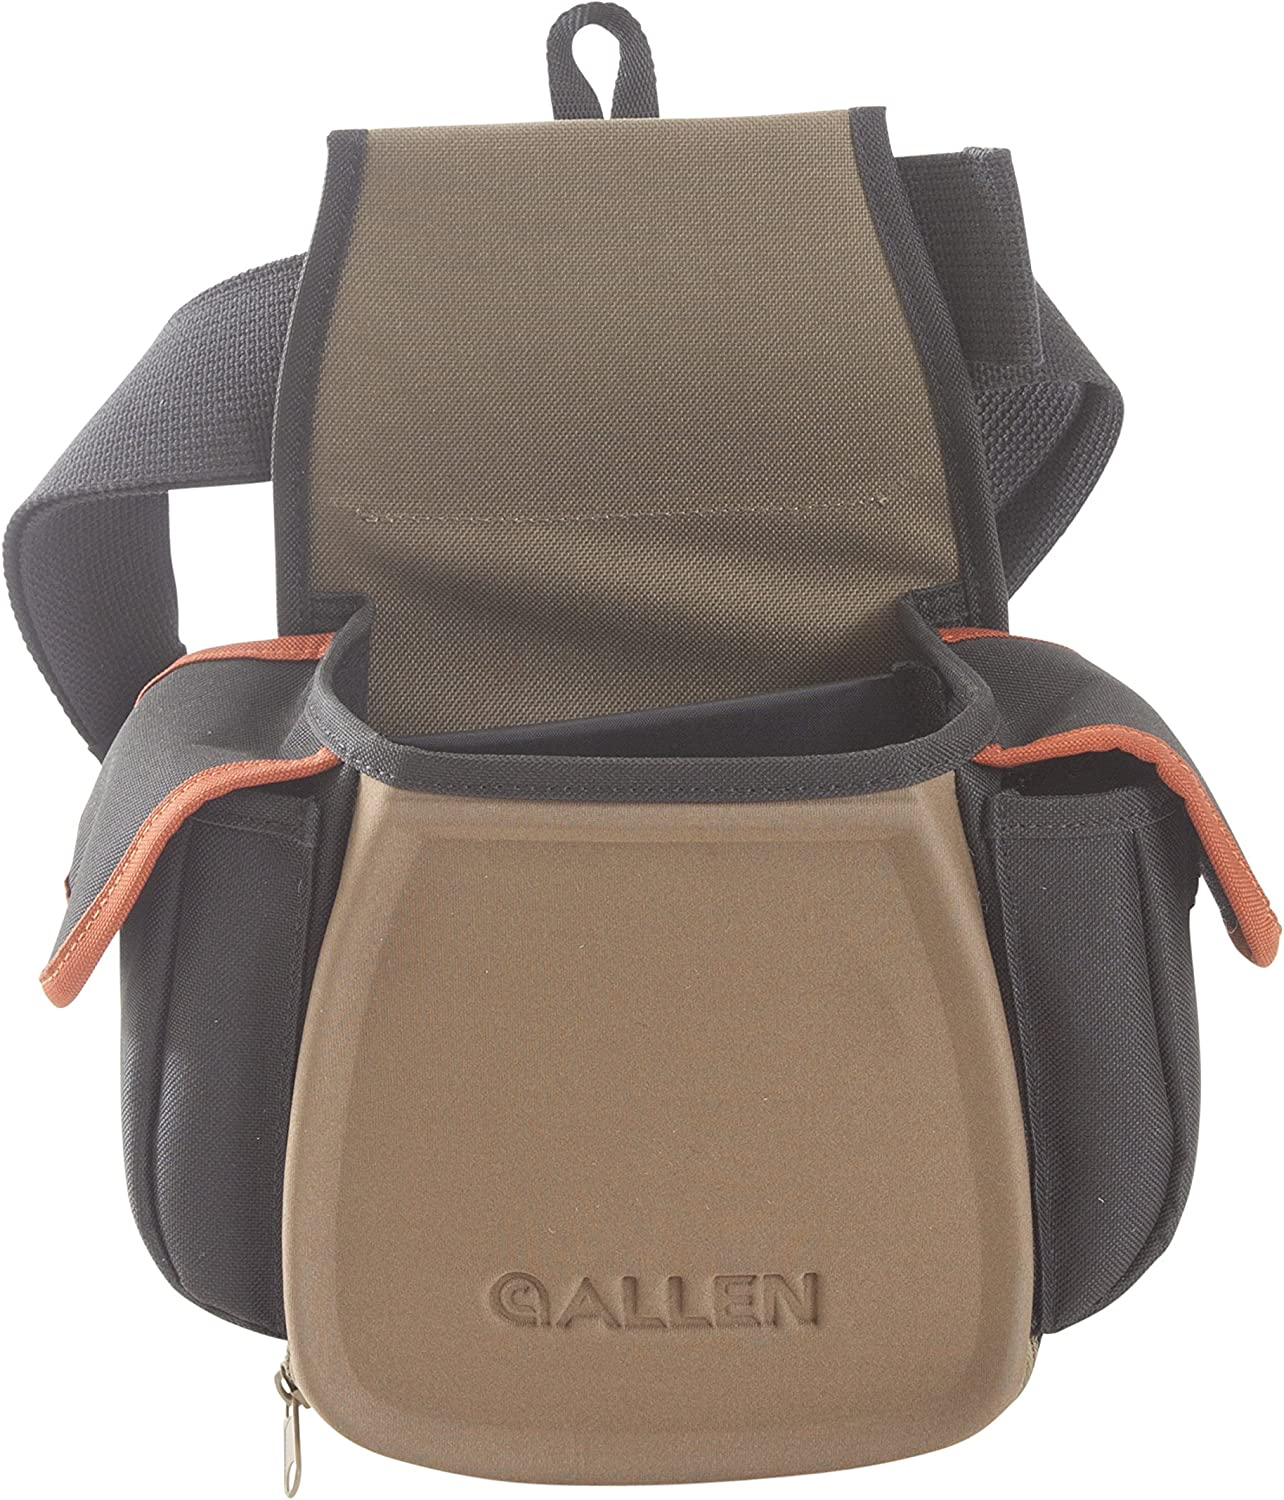 Allen Cases Eliminator Gifts Shooting Same day shipping Bag DC Pro